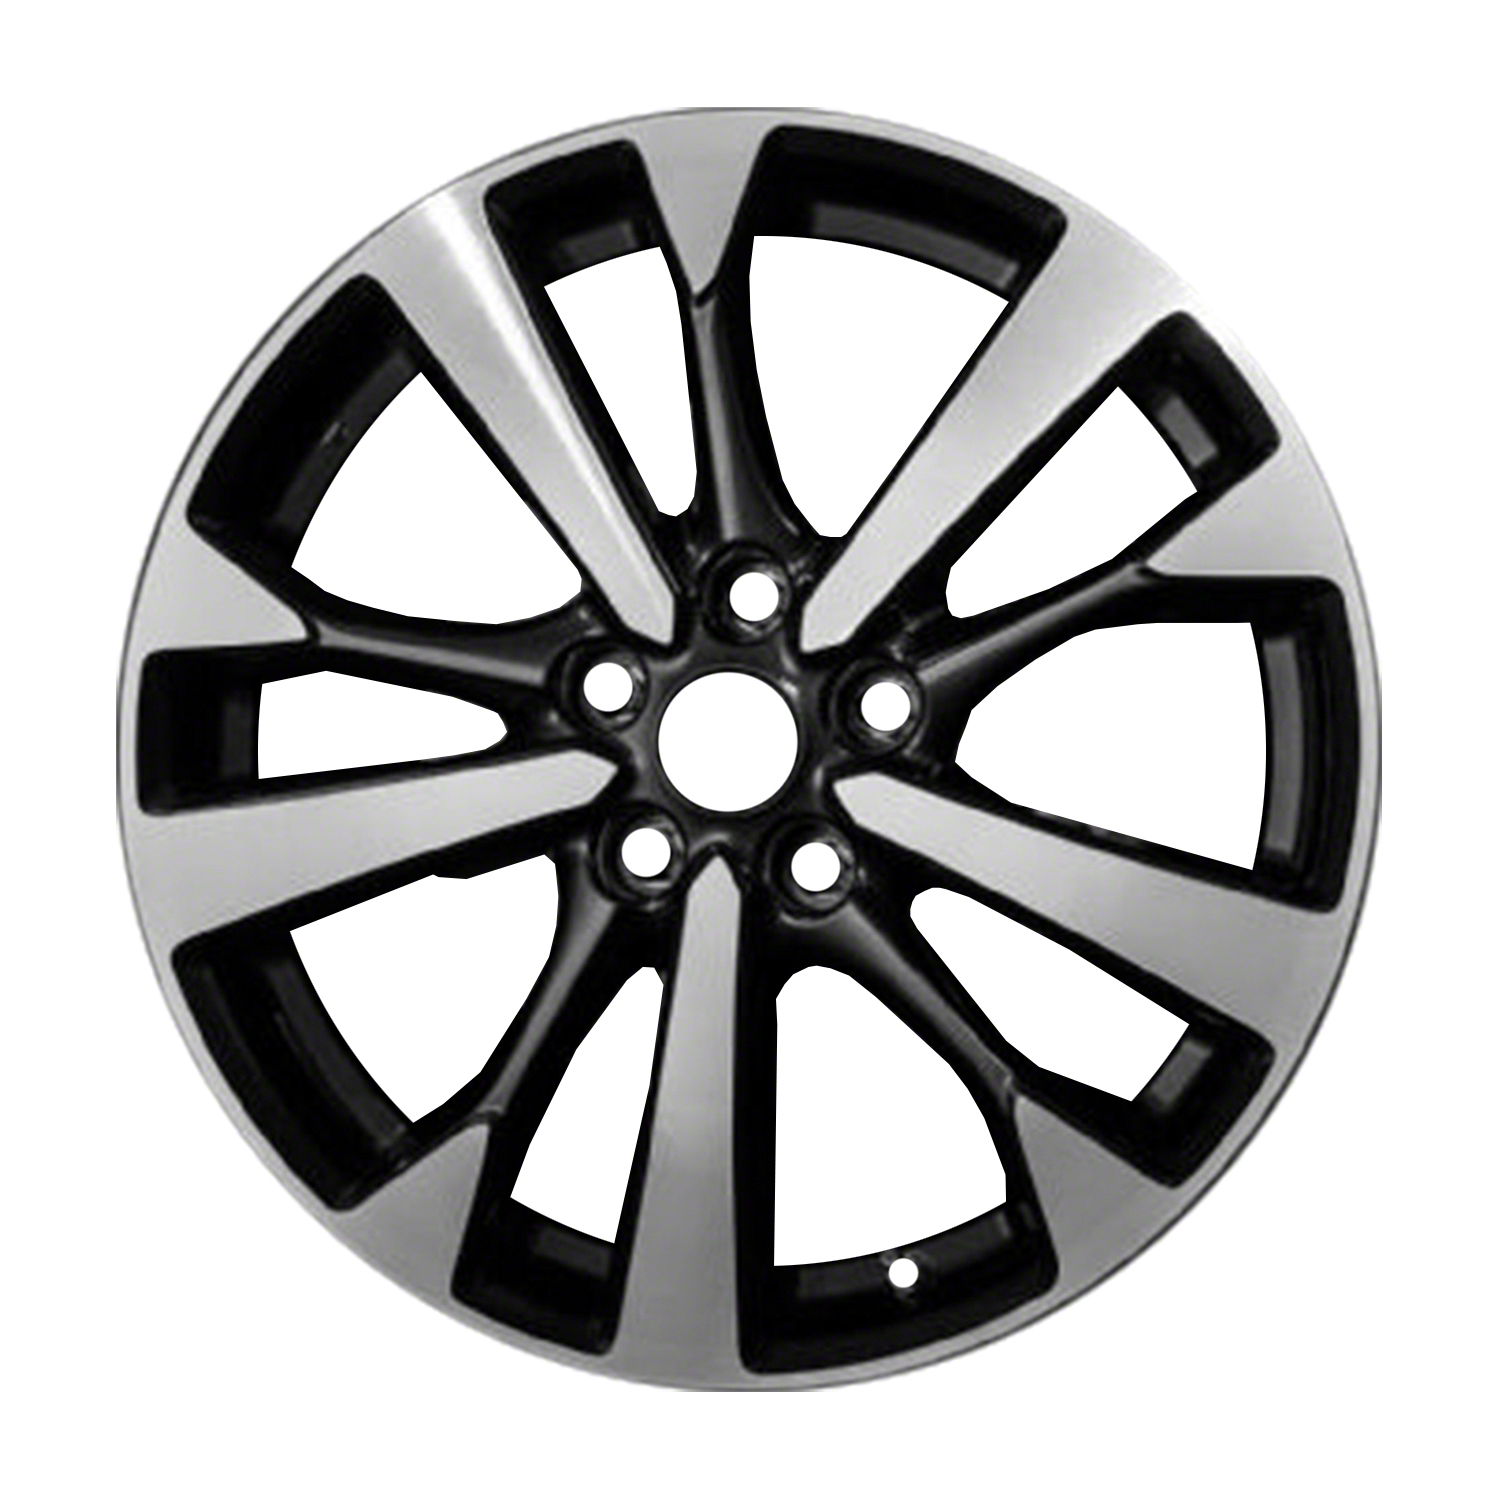 "OEM 18"" Alloy Wheel Rim for 2016 Nissan Altima"